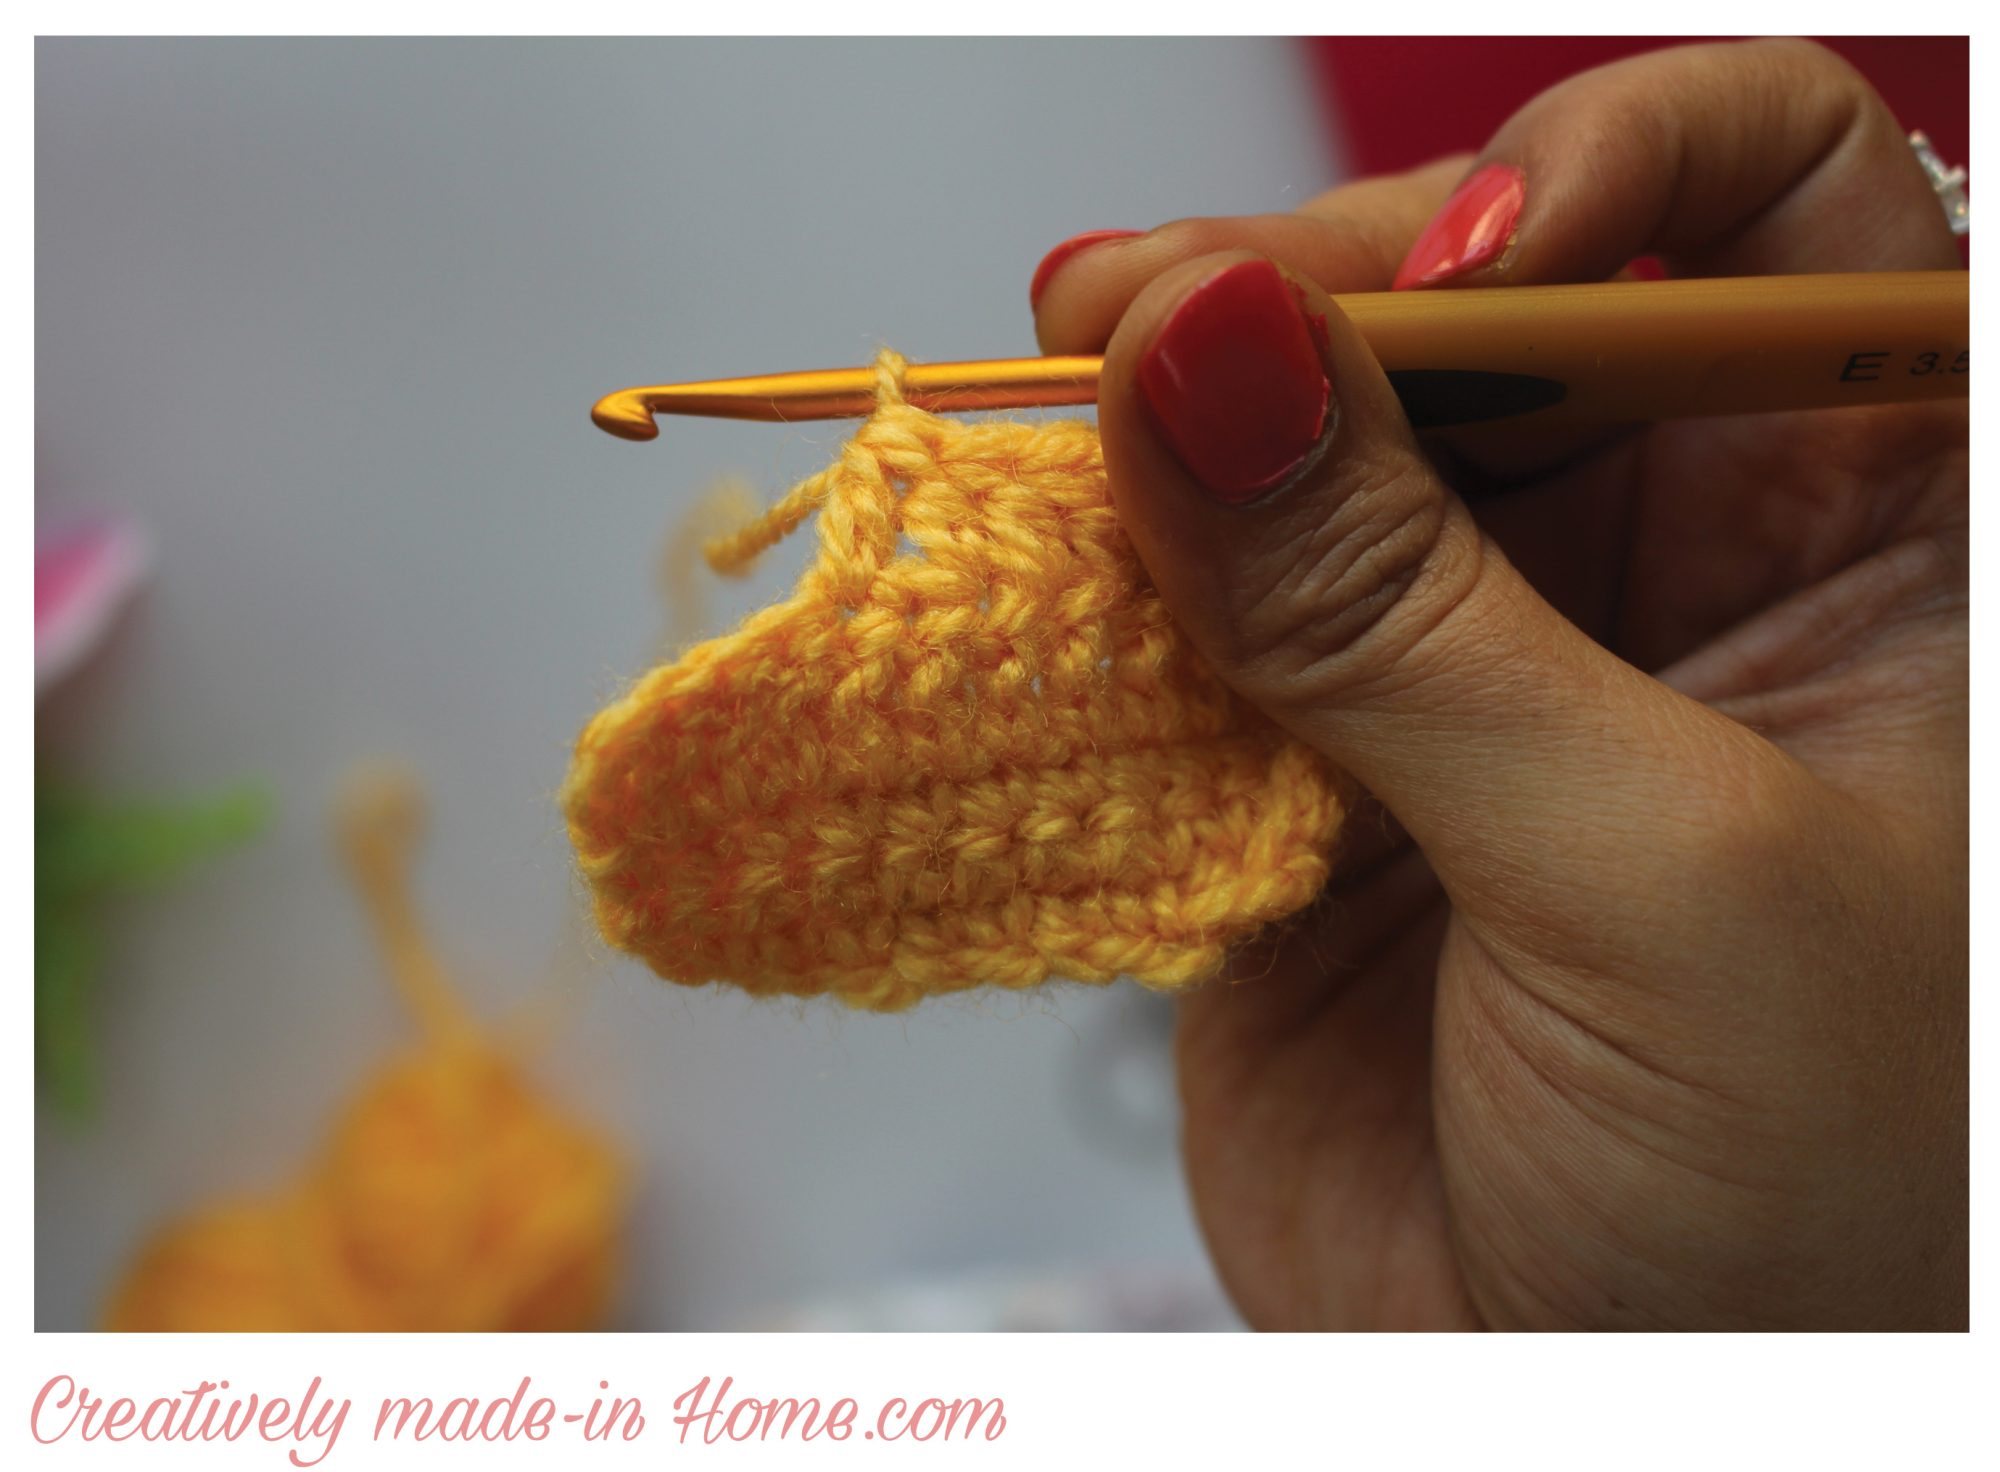 Shaping Crochet By Decreases Creatively Made In Home